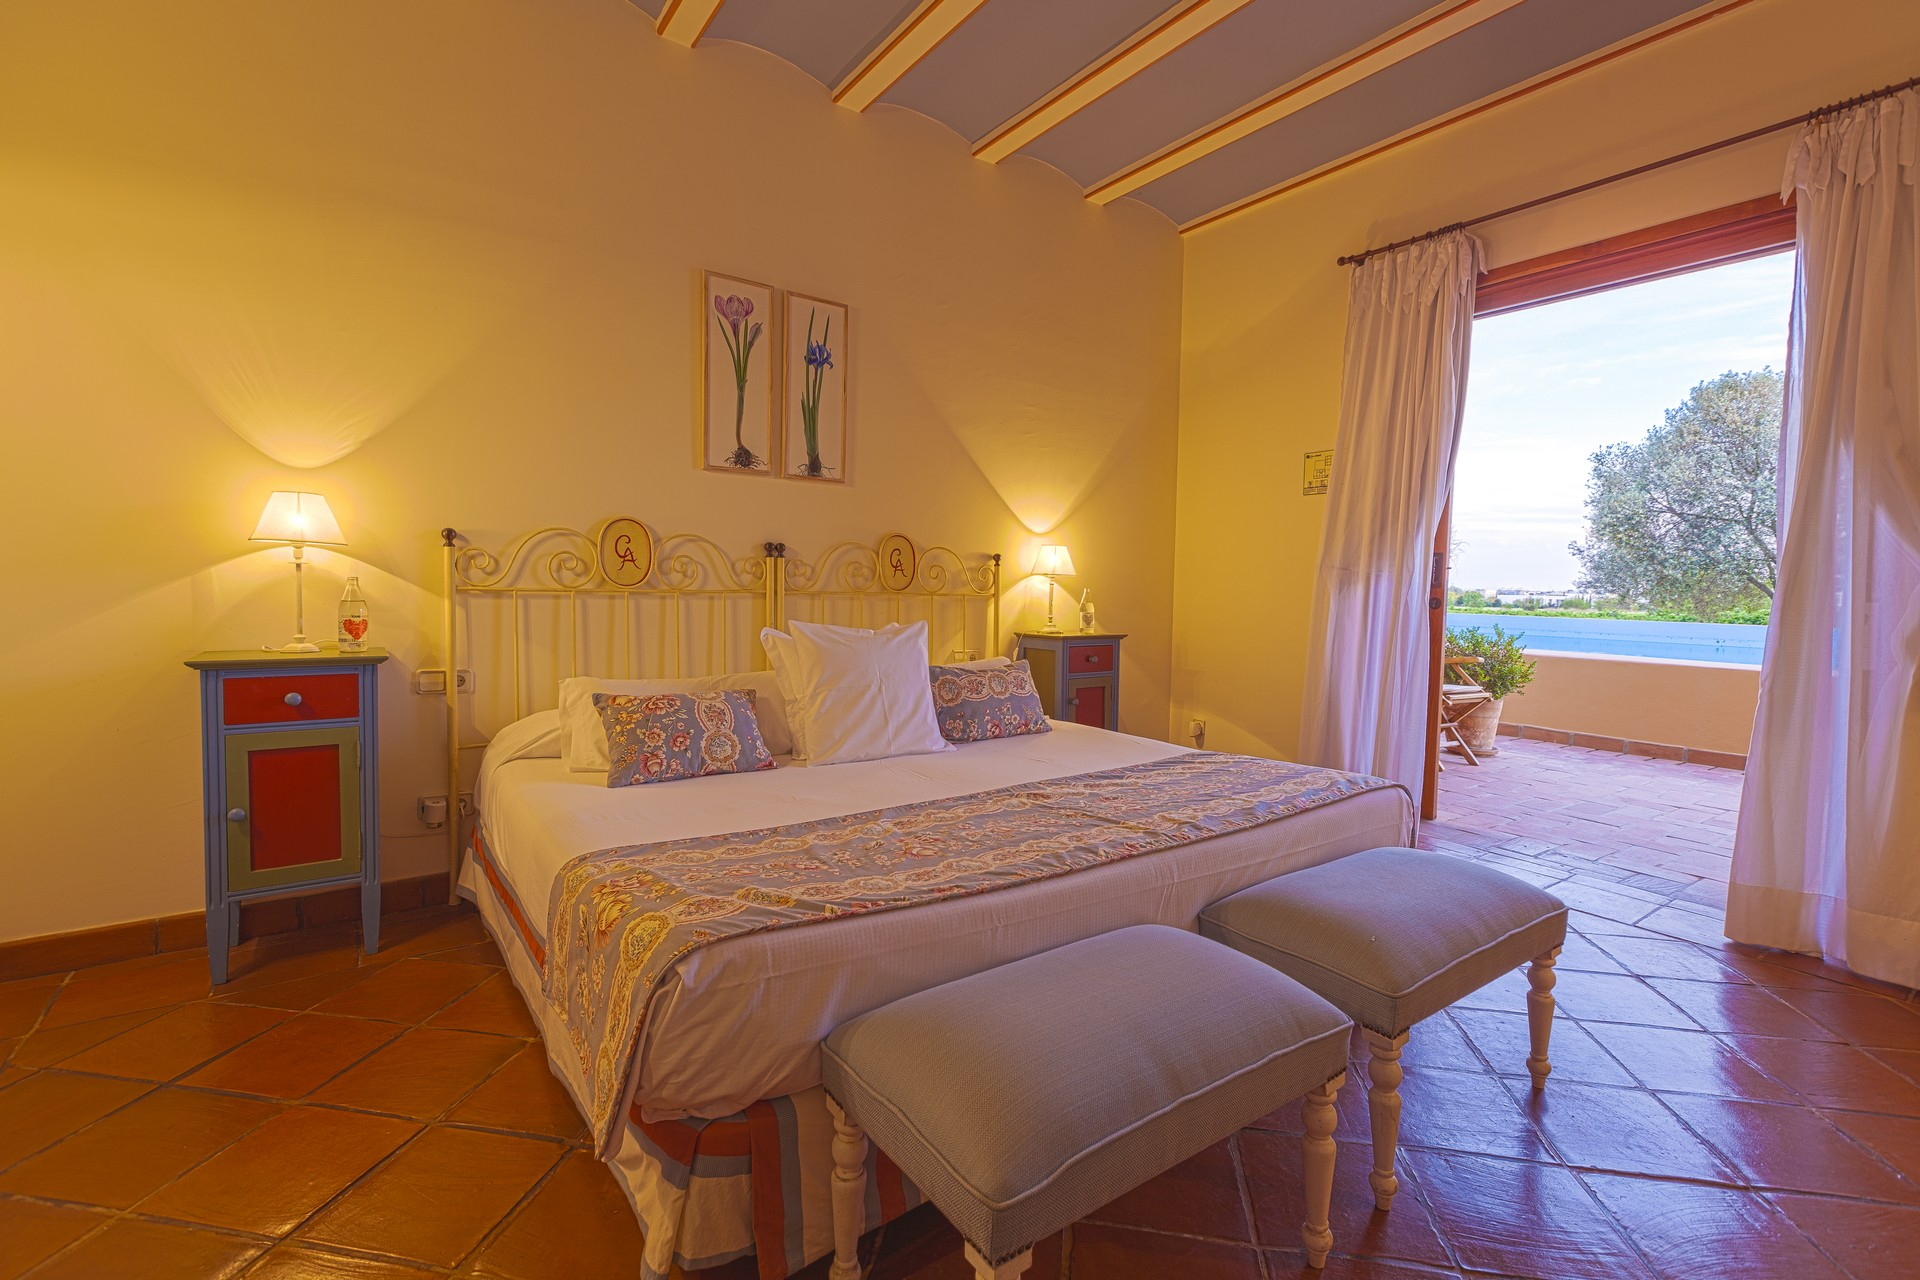 Can Arabi - Double Room Image from Rural Hotels in Ibiza